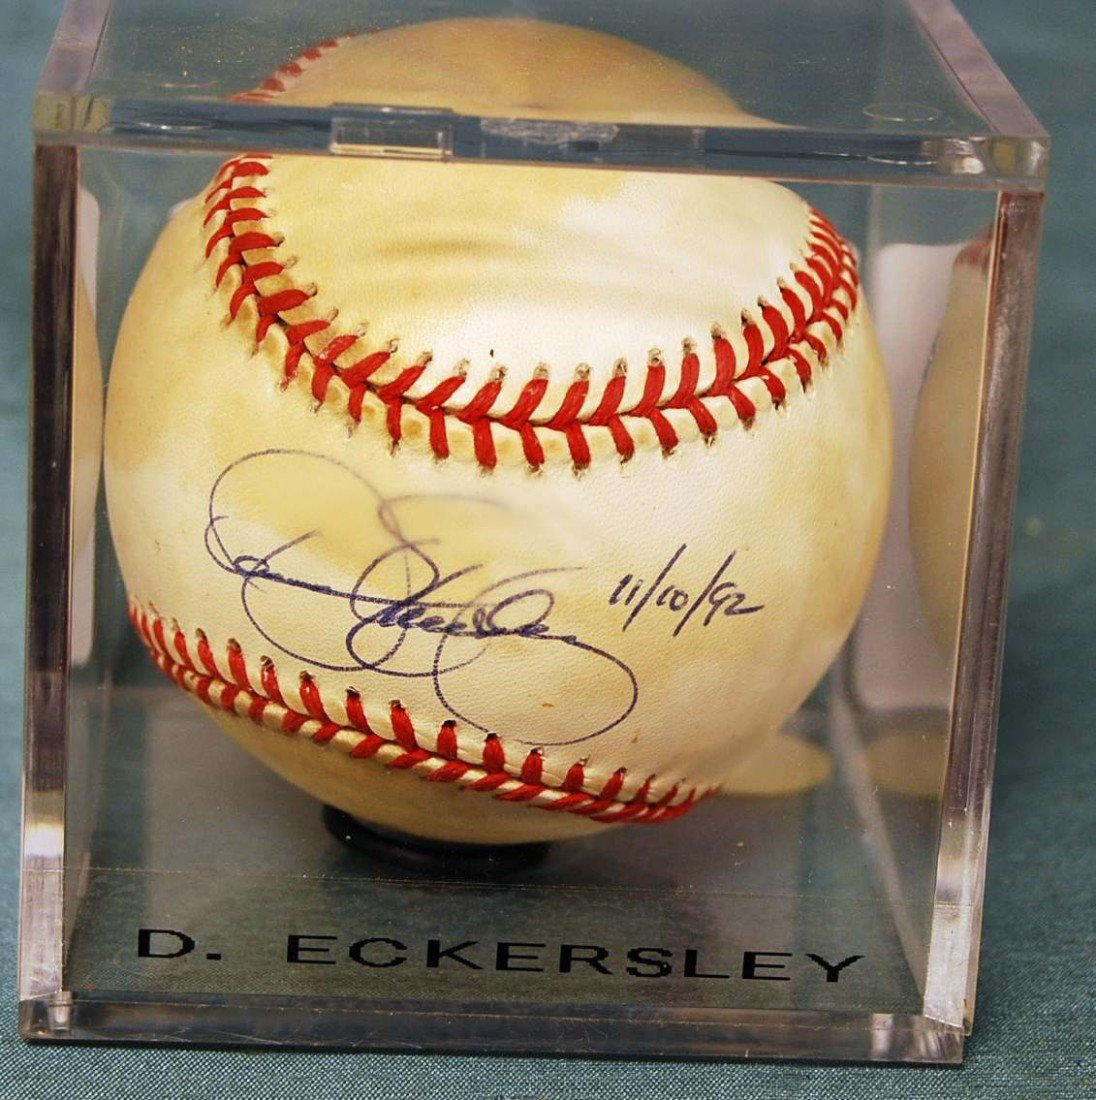 301: D. Eckersley Signed Rawling Baseball